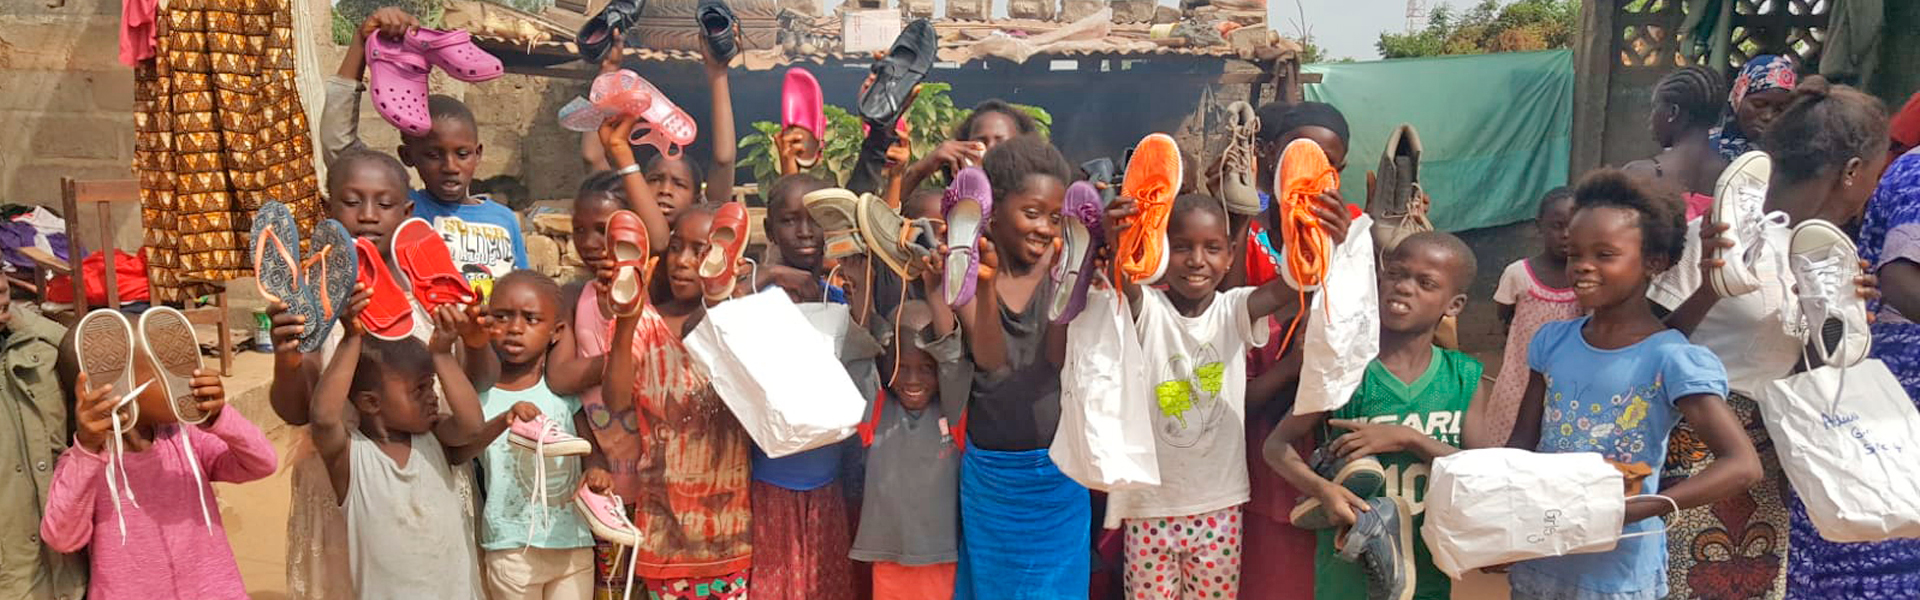 The Gambia Shoe Gallery 4